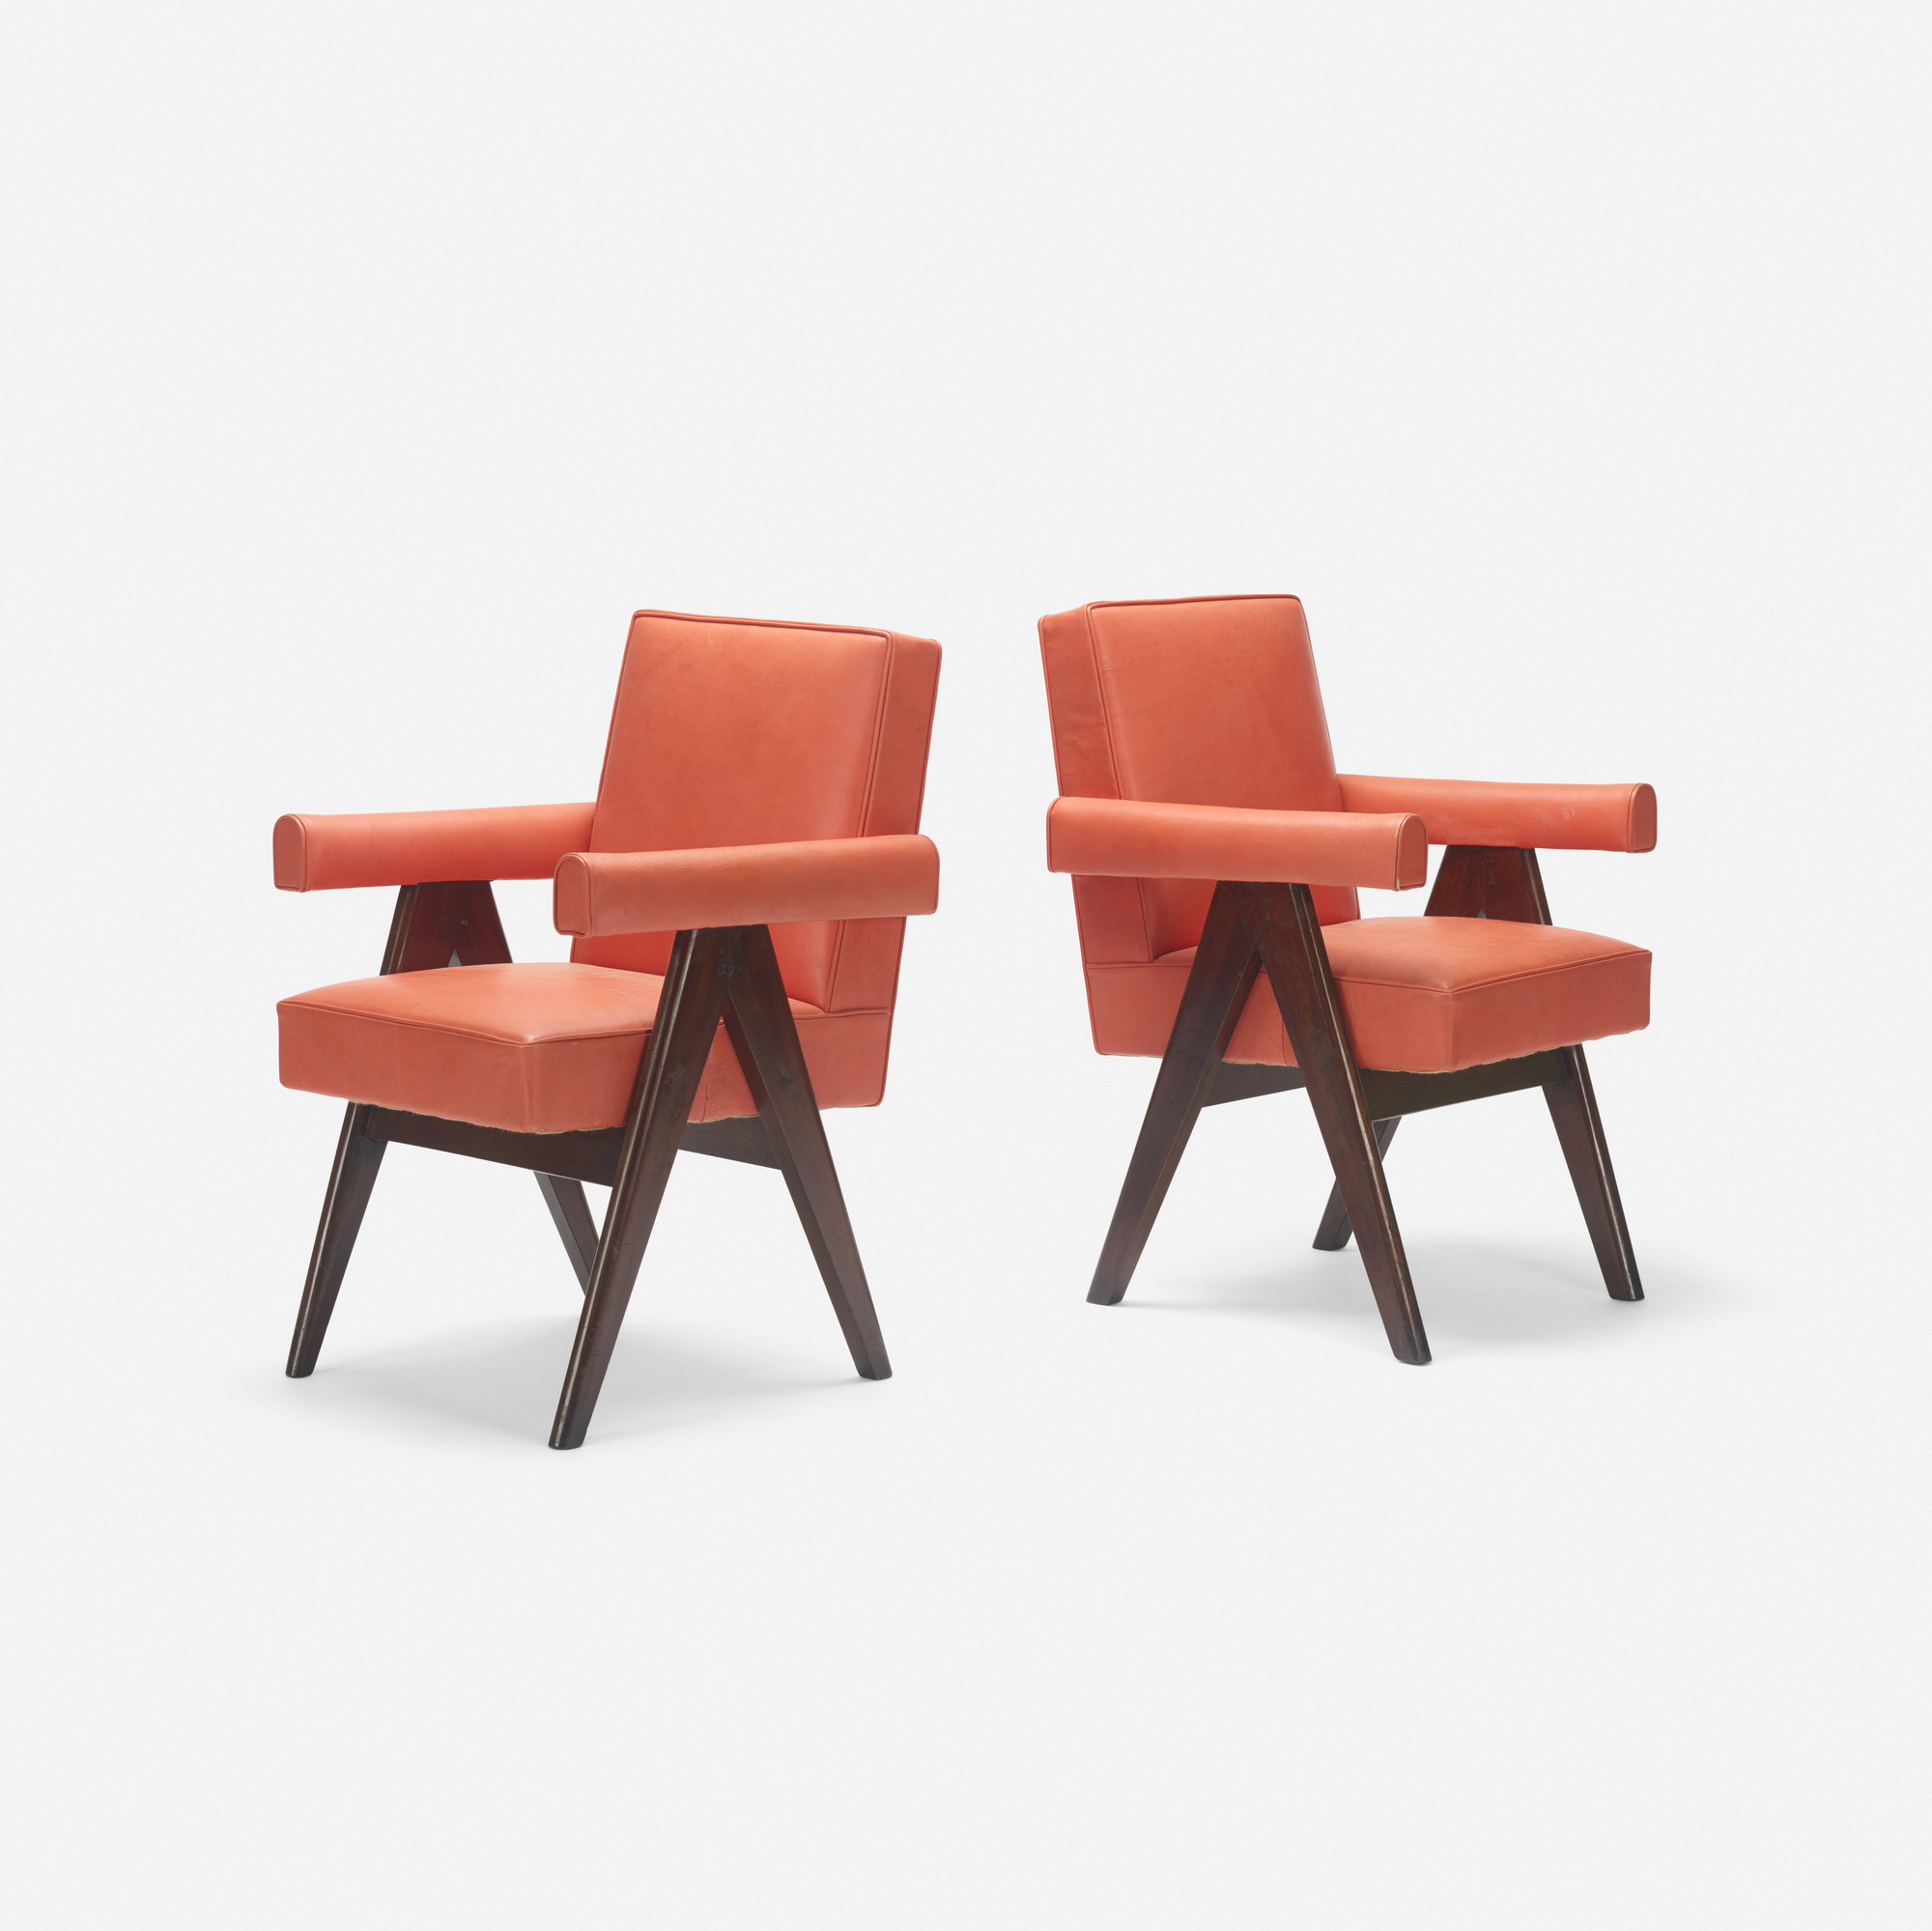 117: Pierre Jeanneret / pair of Committee armchairs from the High Court, Chandigarh (1 of 3)